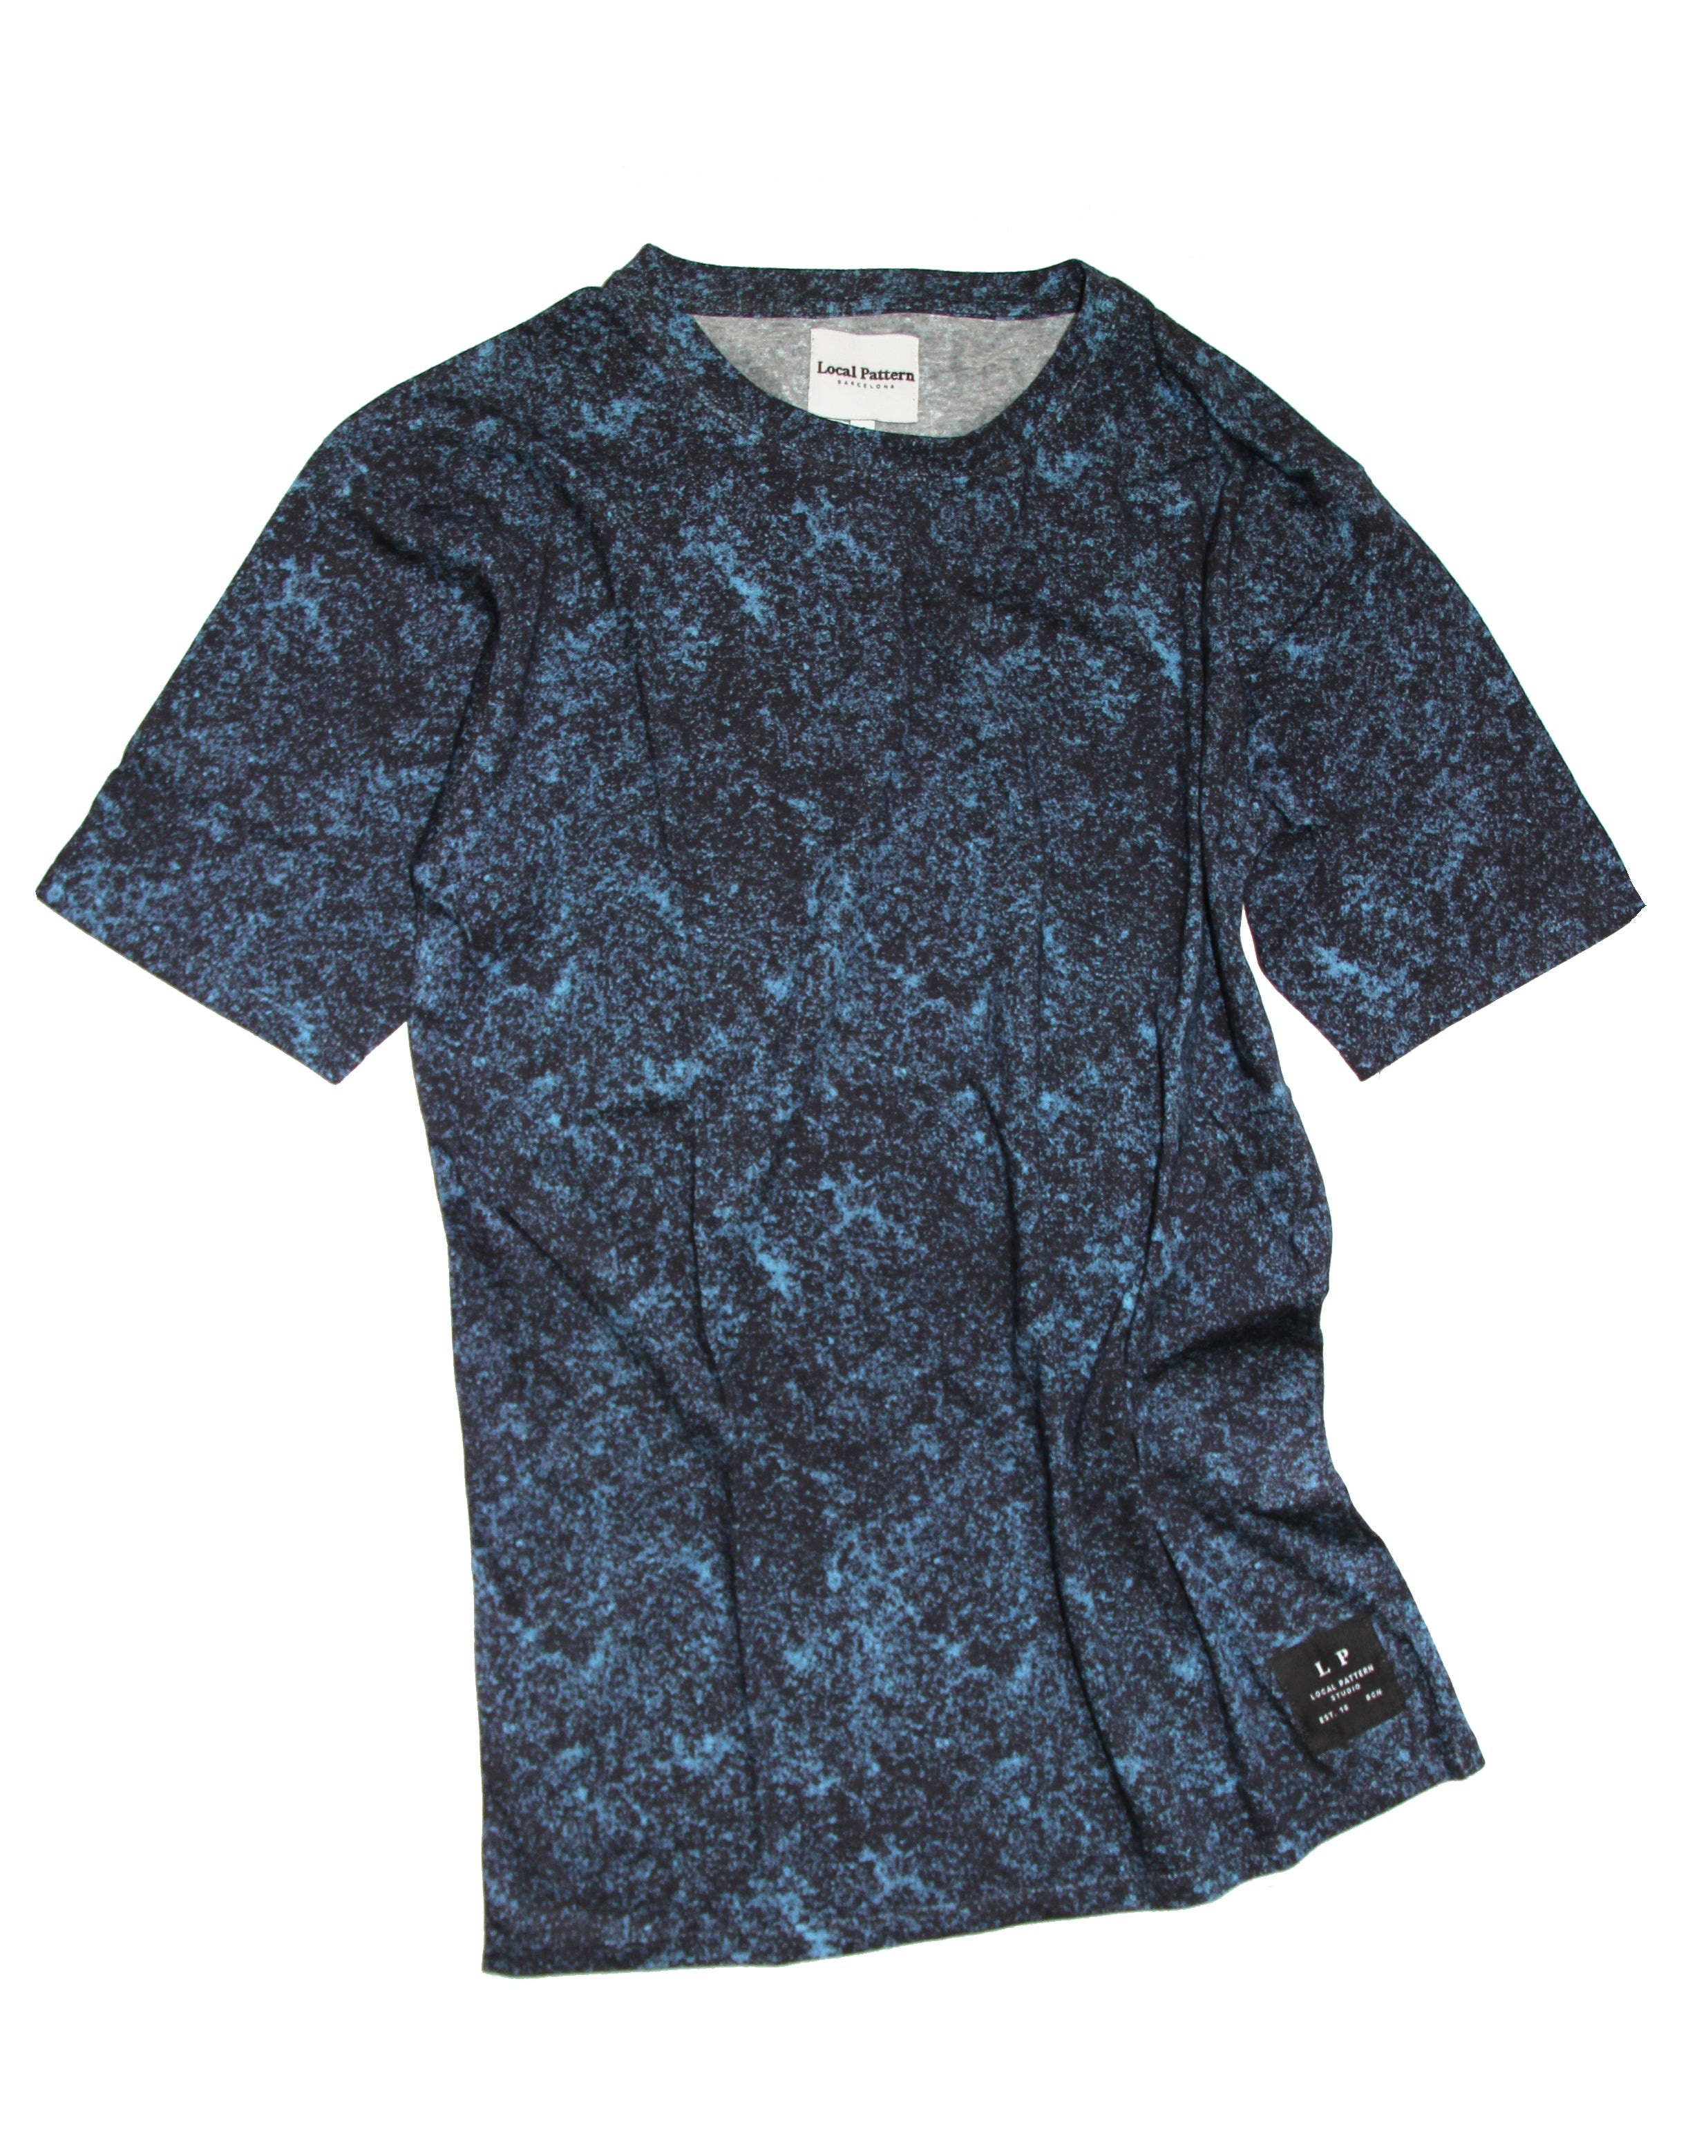 78183ab2 Texture Print Tee by Local Pattern